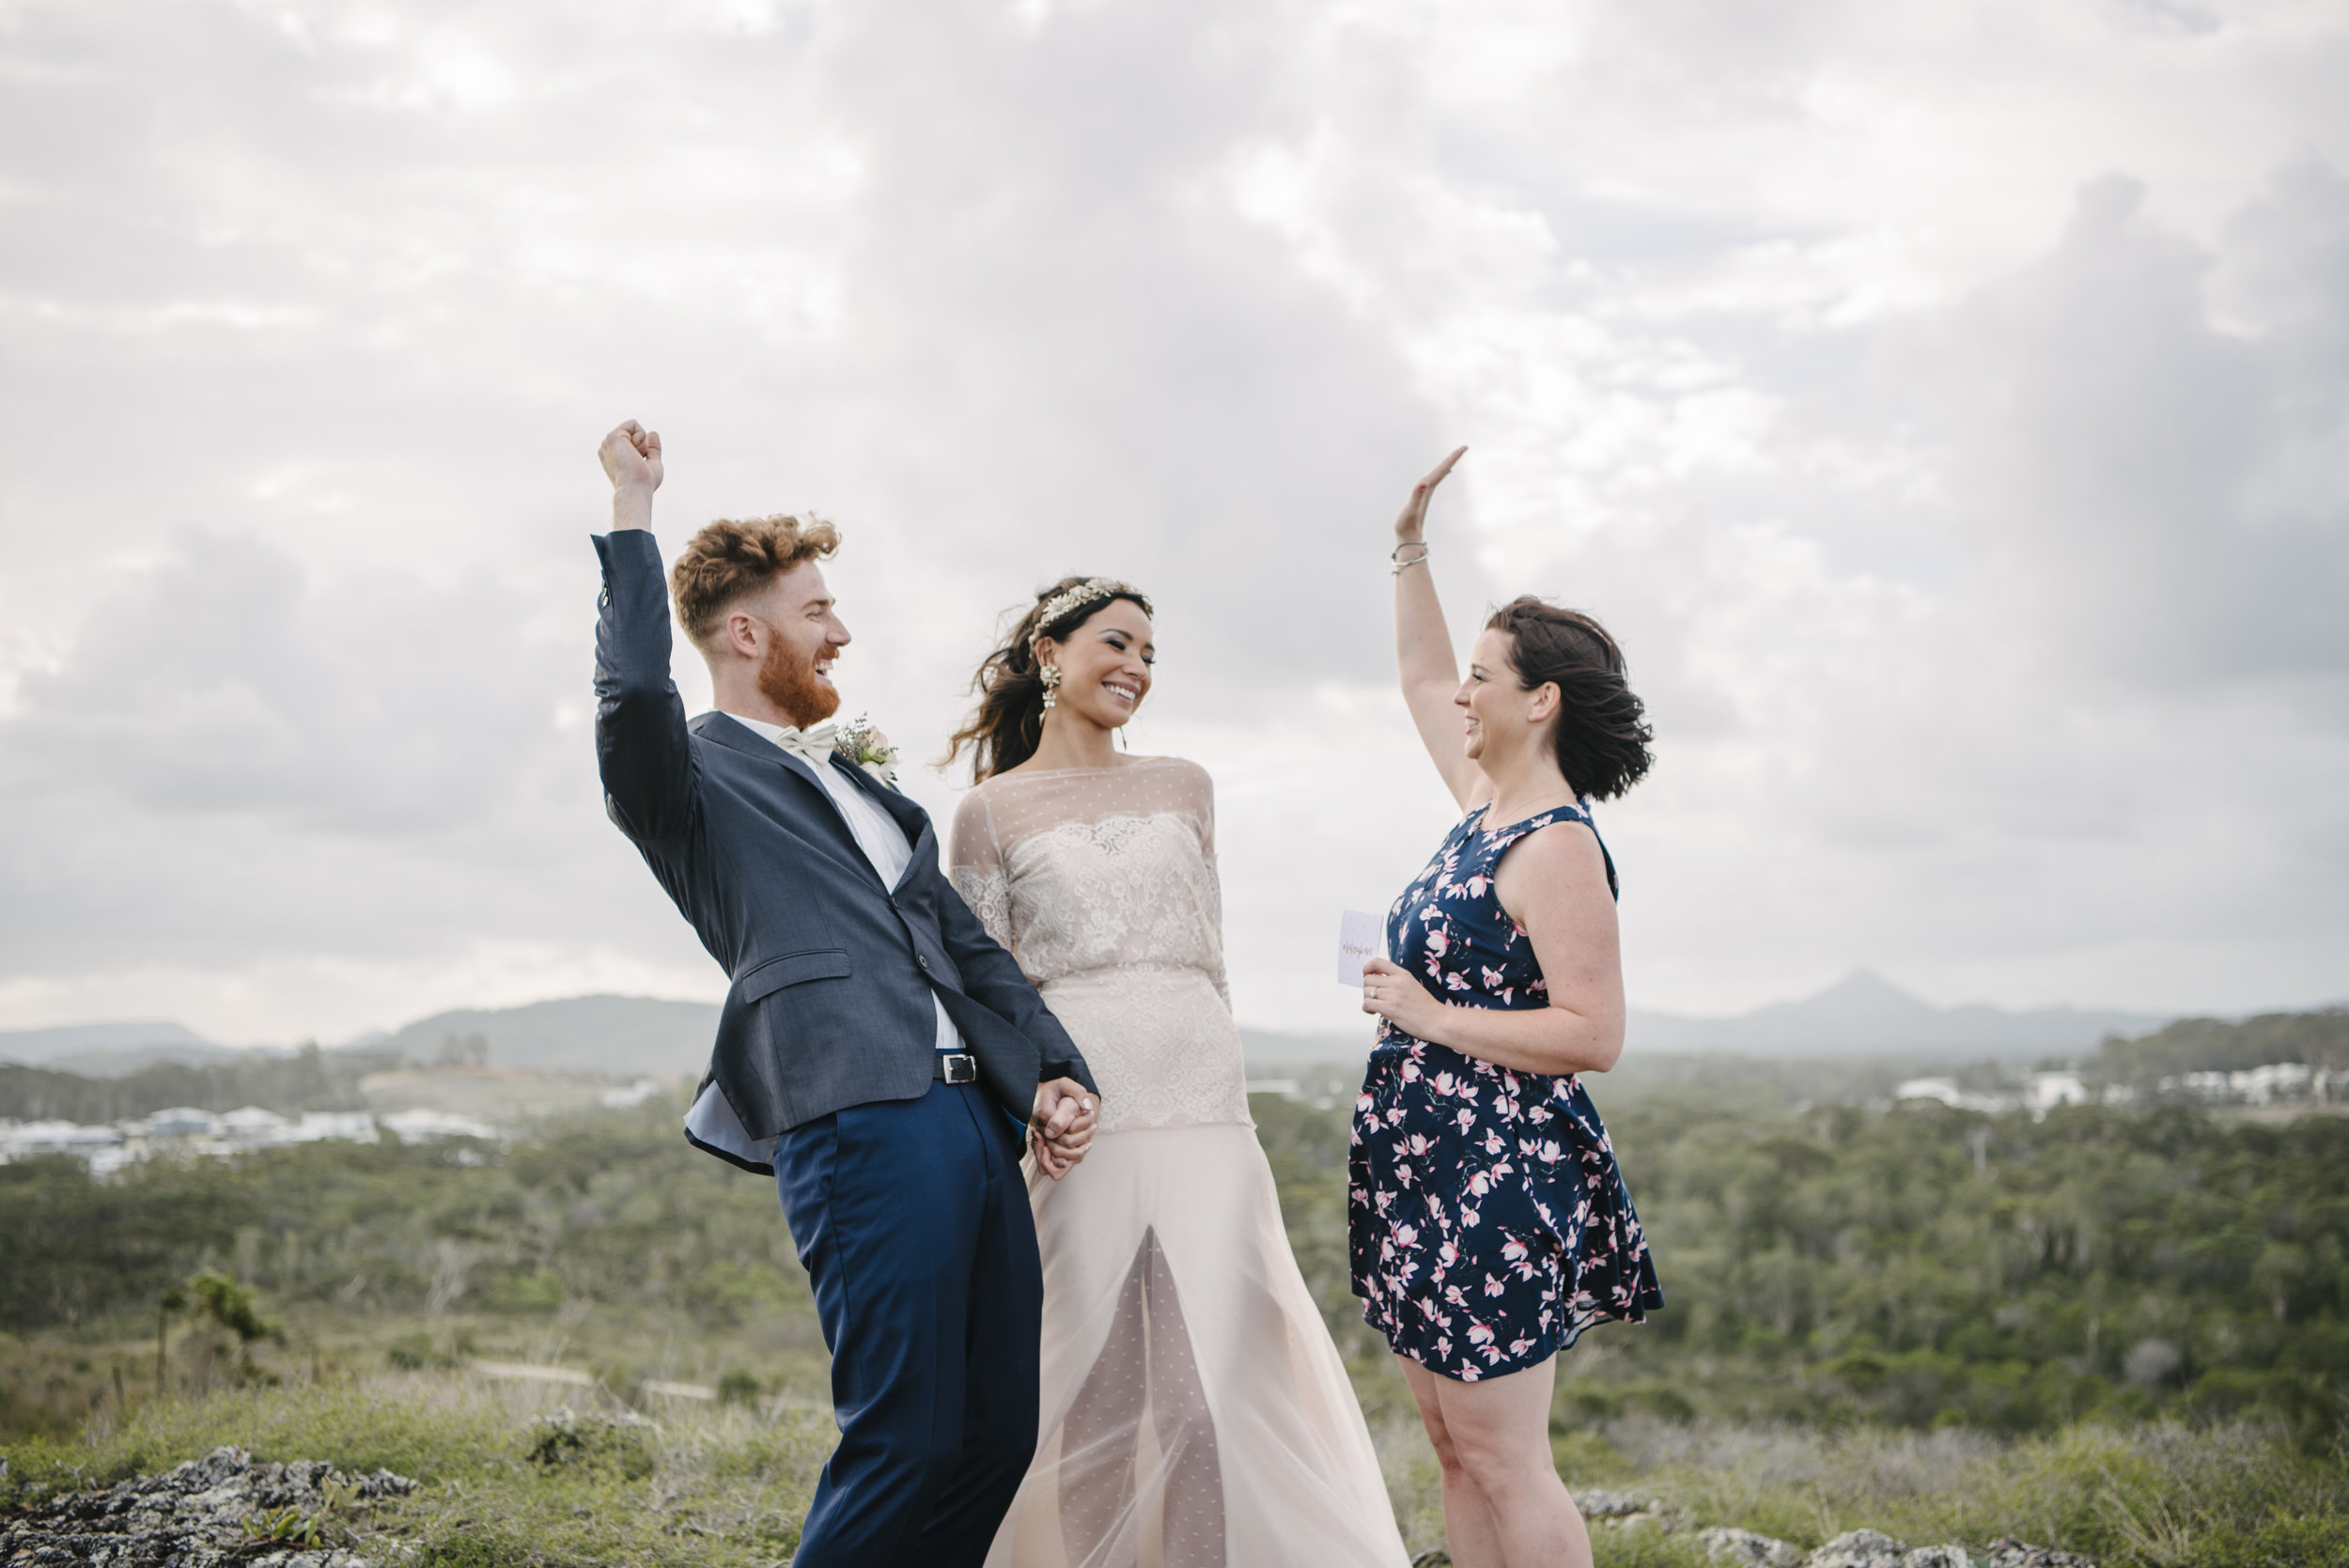 Mountain-Glam-we-are-twine-wedding-photography-104-HR.jpg